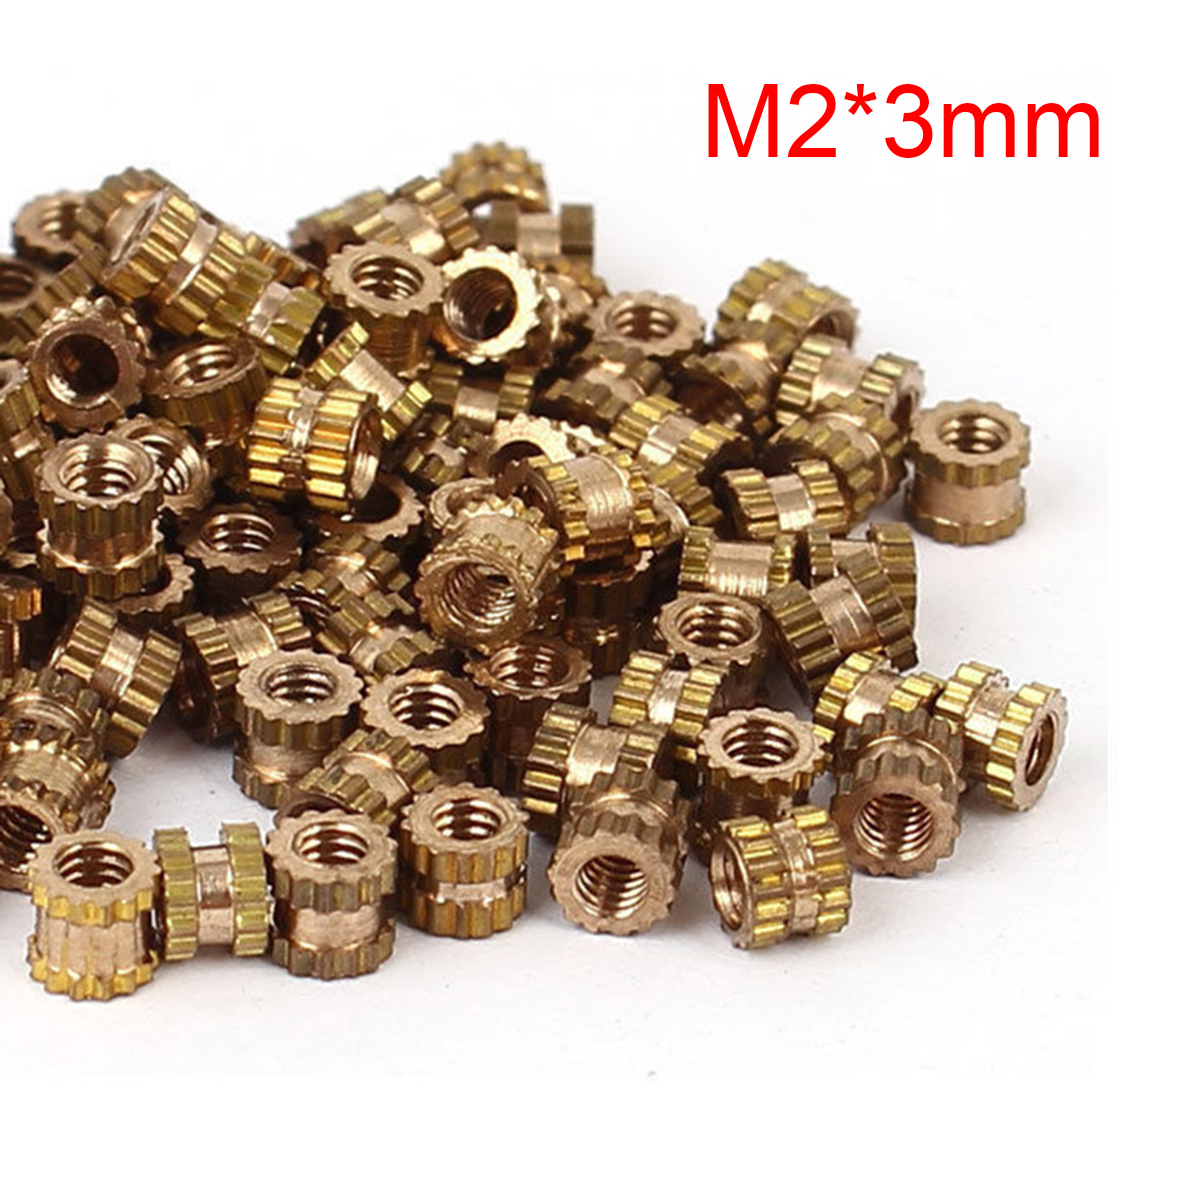 100pcs M2 Thread Knurled Insert 3mm Brass Round Cylinder Inserts Embedded Nuts With Corrosion Resistance